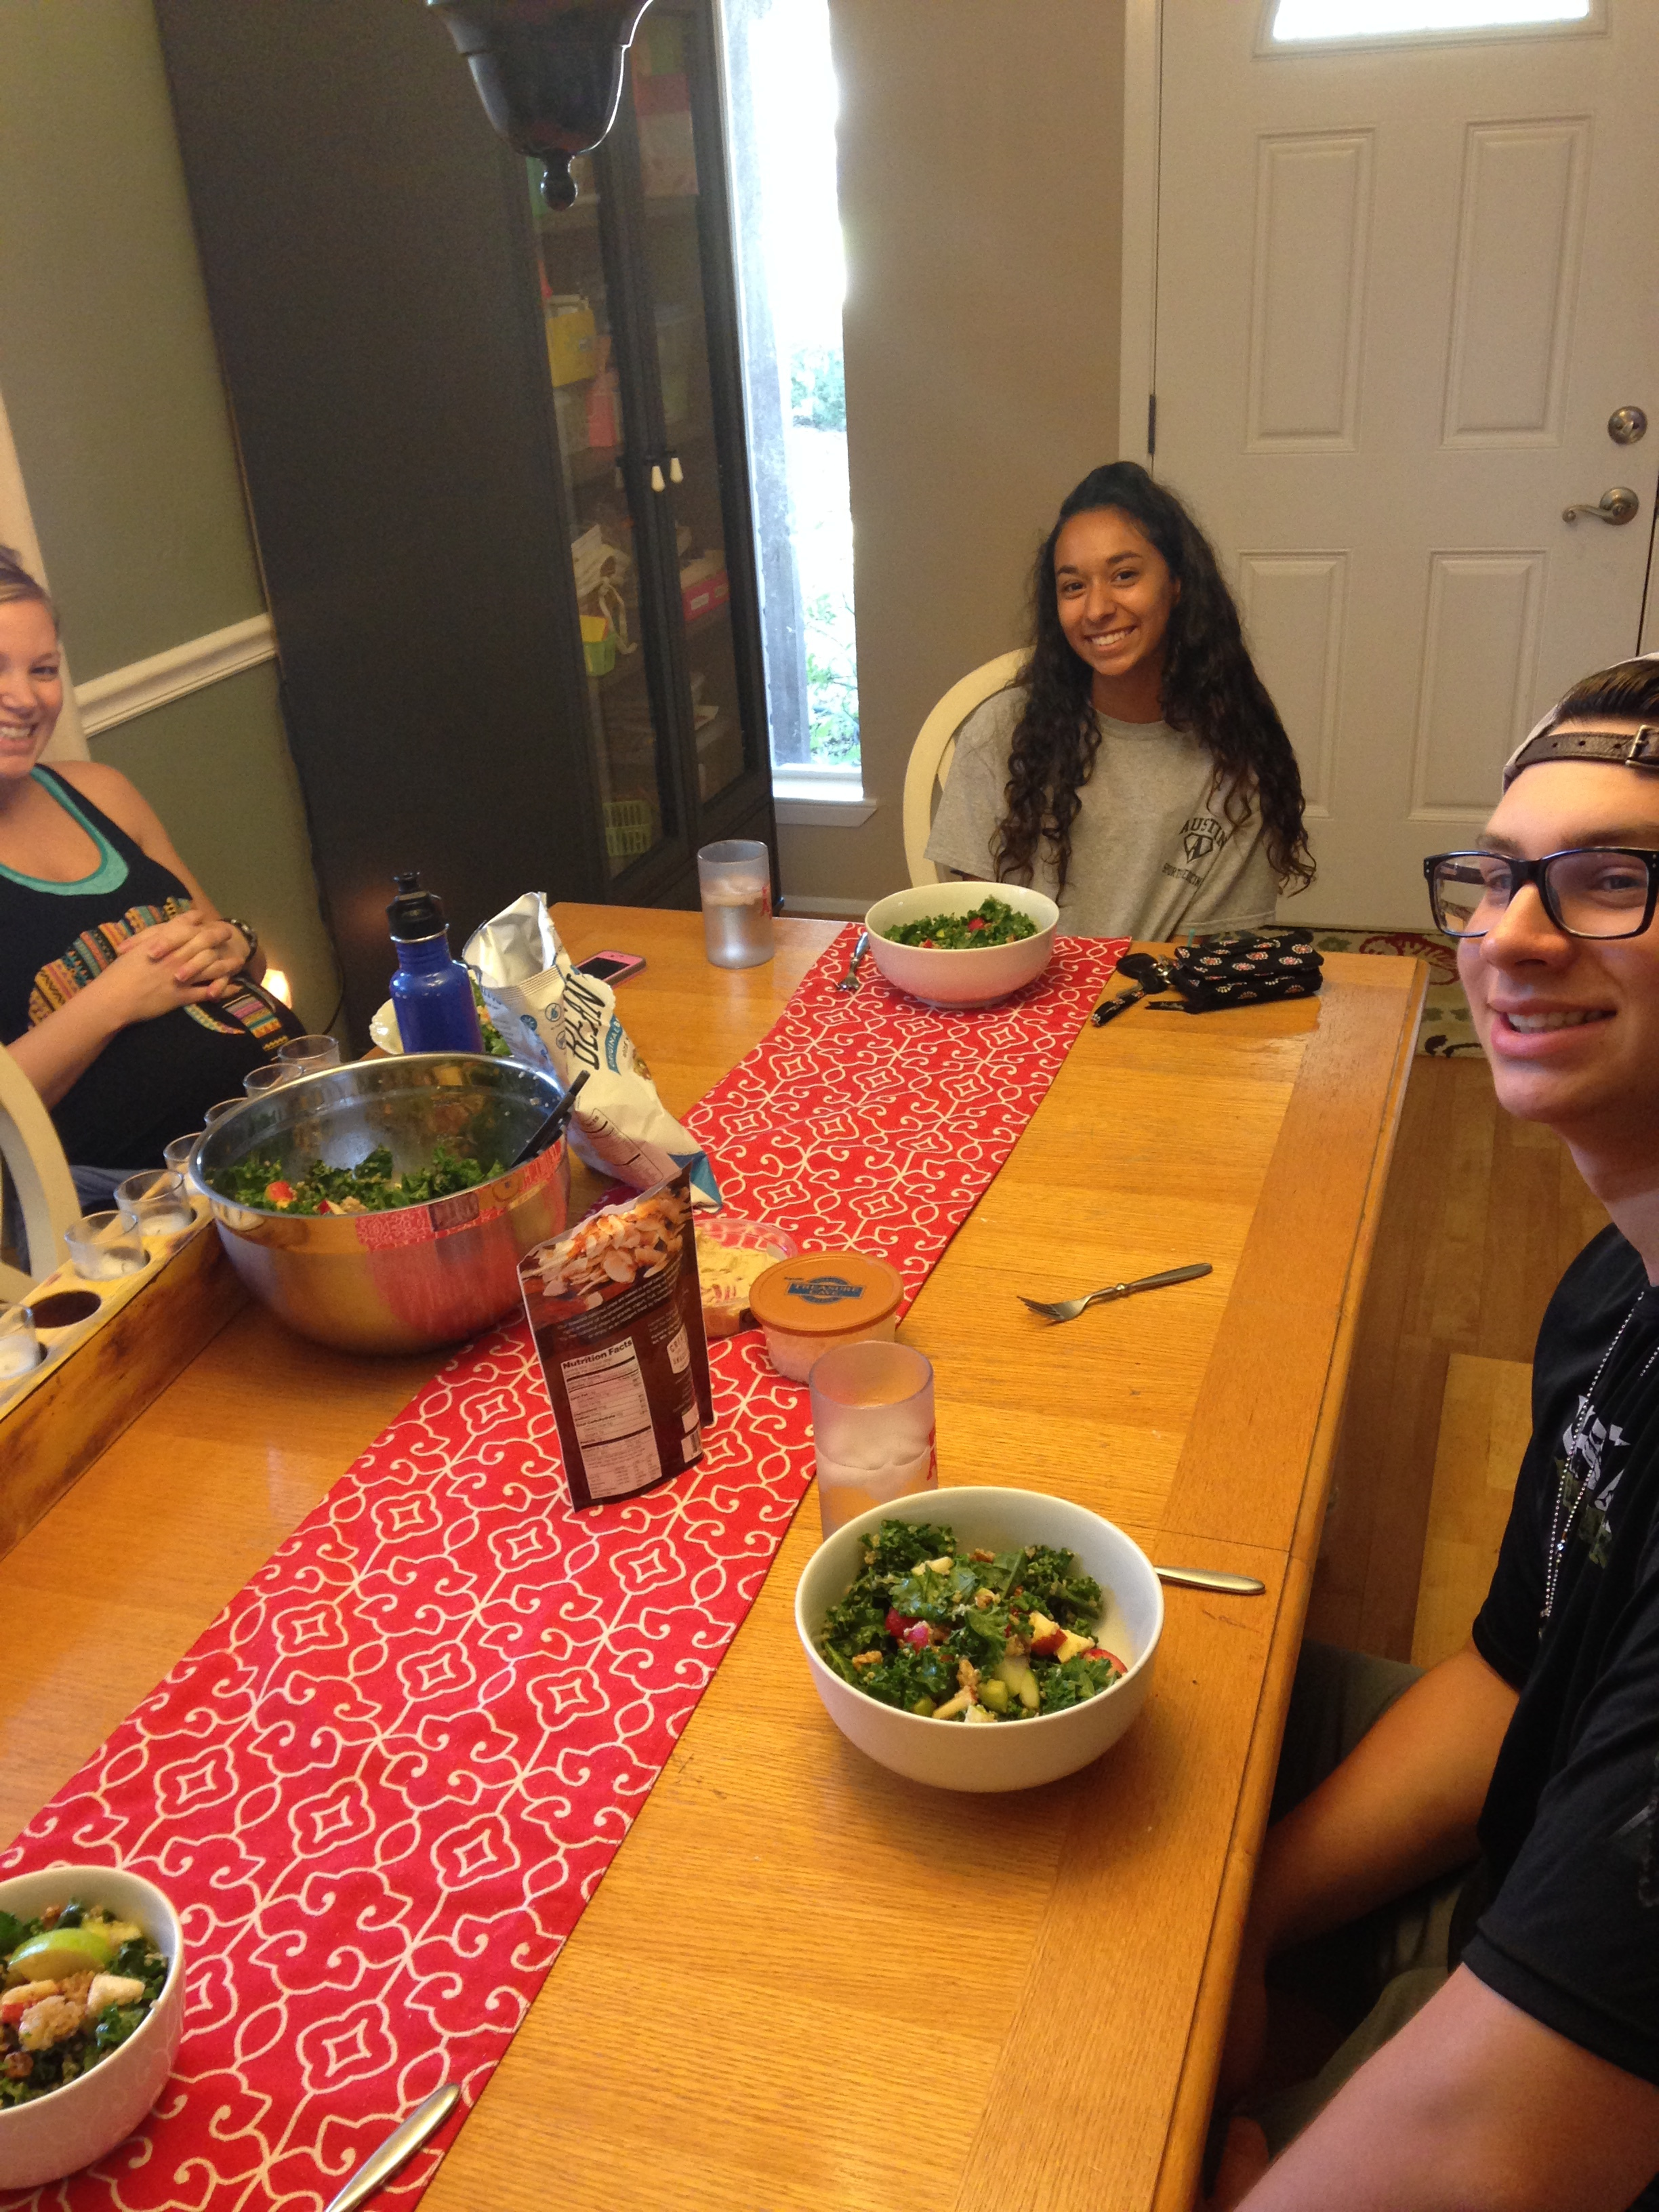 Our Houston Seekers after their nutritional scavenger hunt enjoying their meal and I am sure a lively discussion with Gary and his lovely wife.